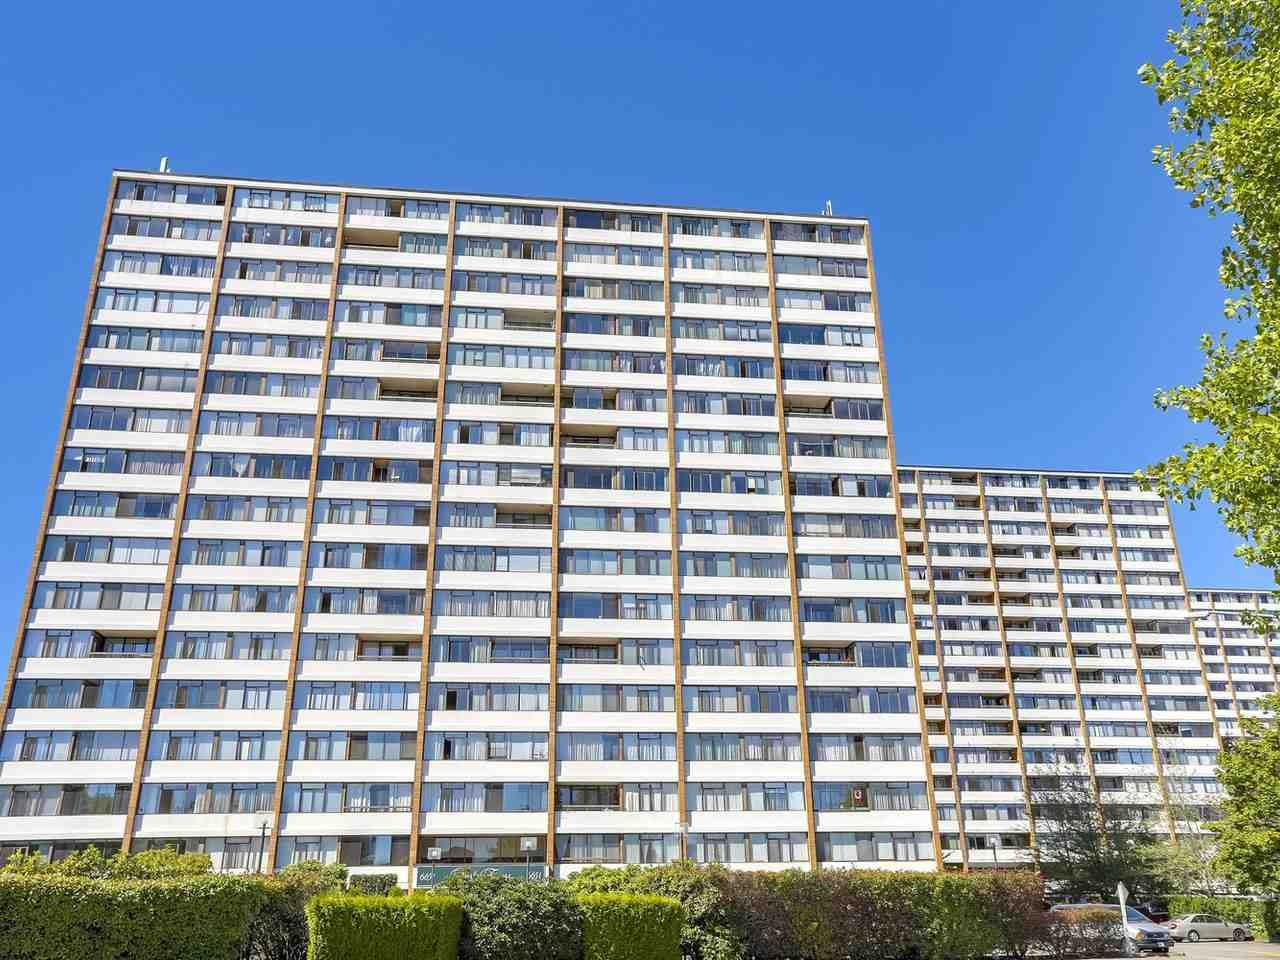 """Main Photo: 1608 6651 MINORU Boulevard in Richmond: Brighouse Condo for sale in """"REGENCY PARK TOWERS"""" : MLS®# R2209522"""